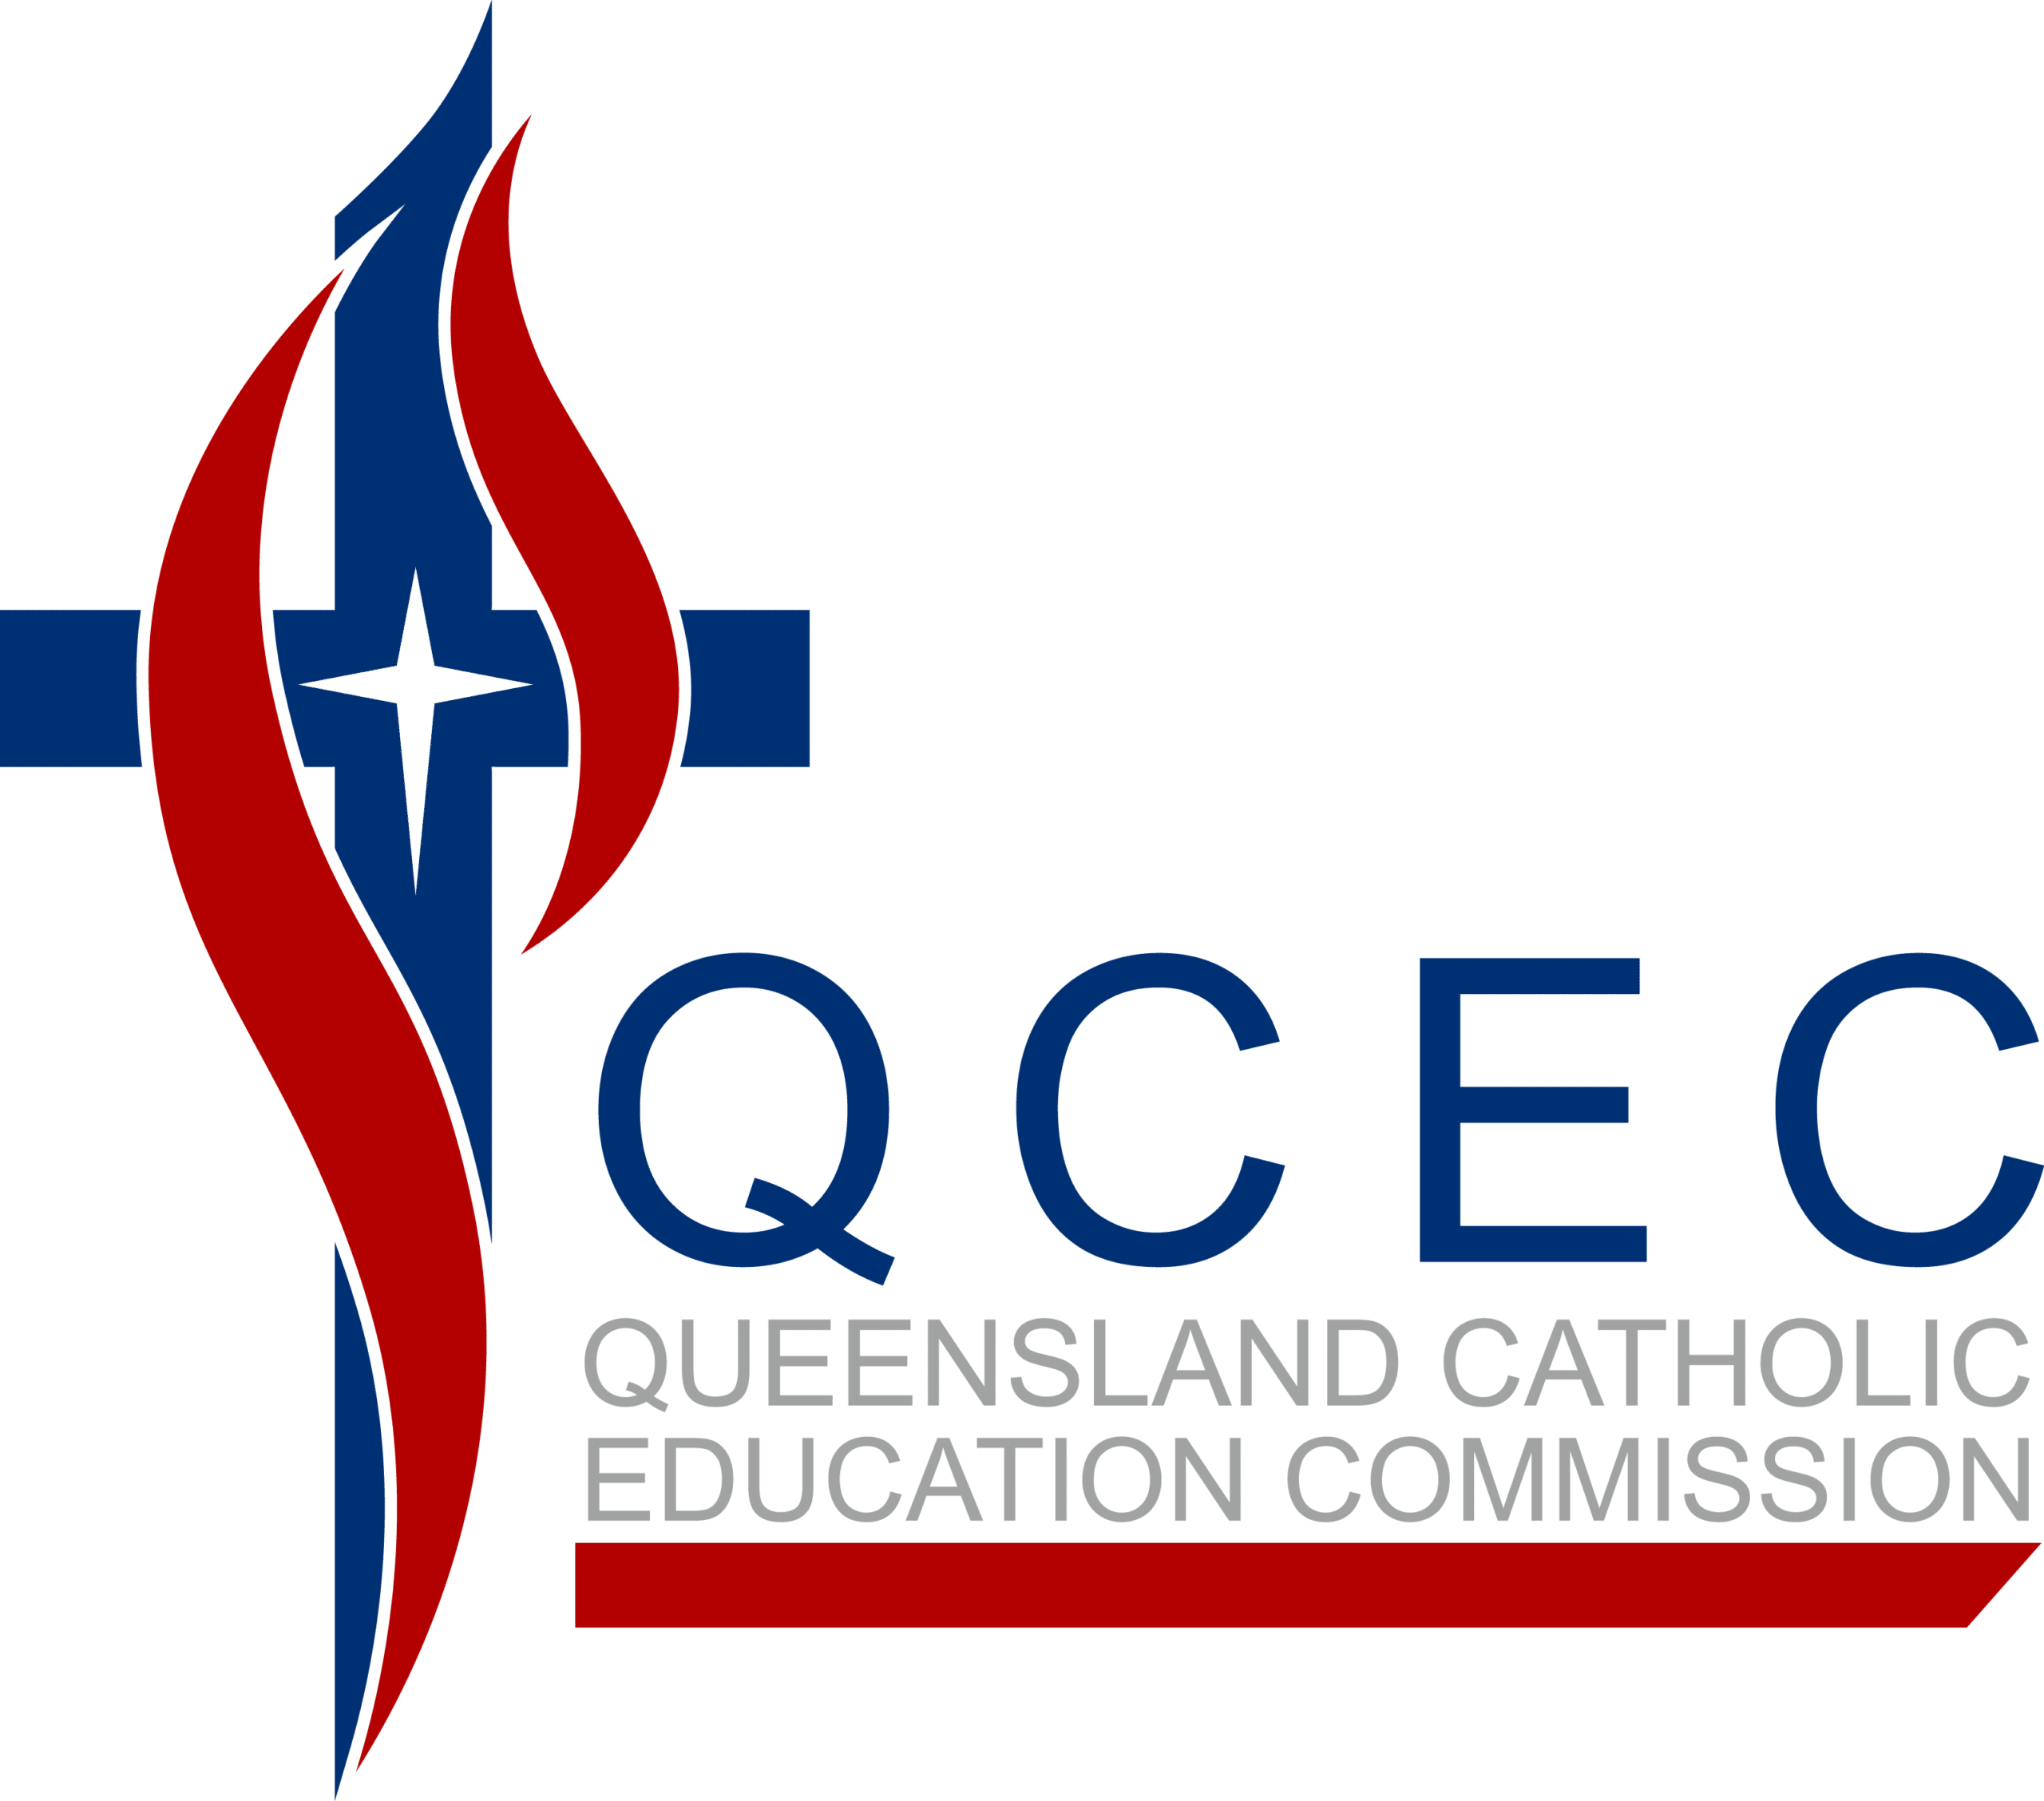 queensland government guidelines for providing sponsorship